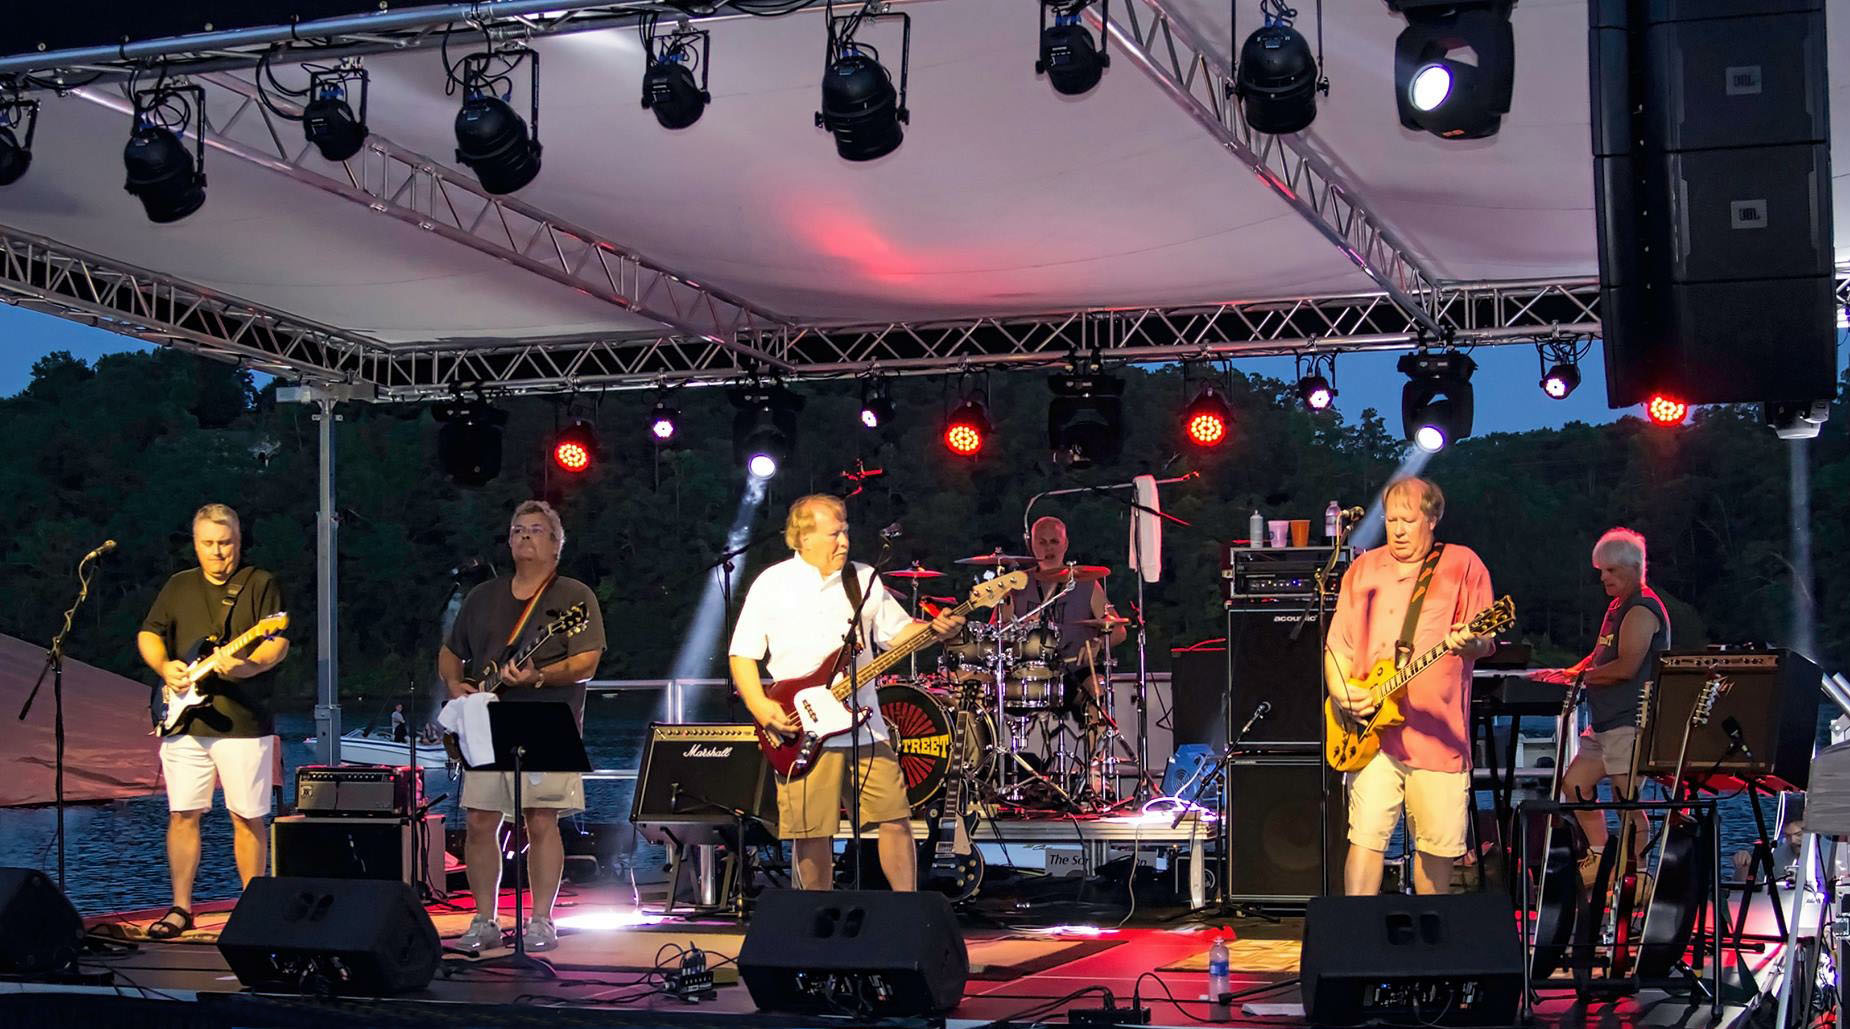 Riverstreet band on stage